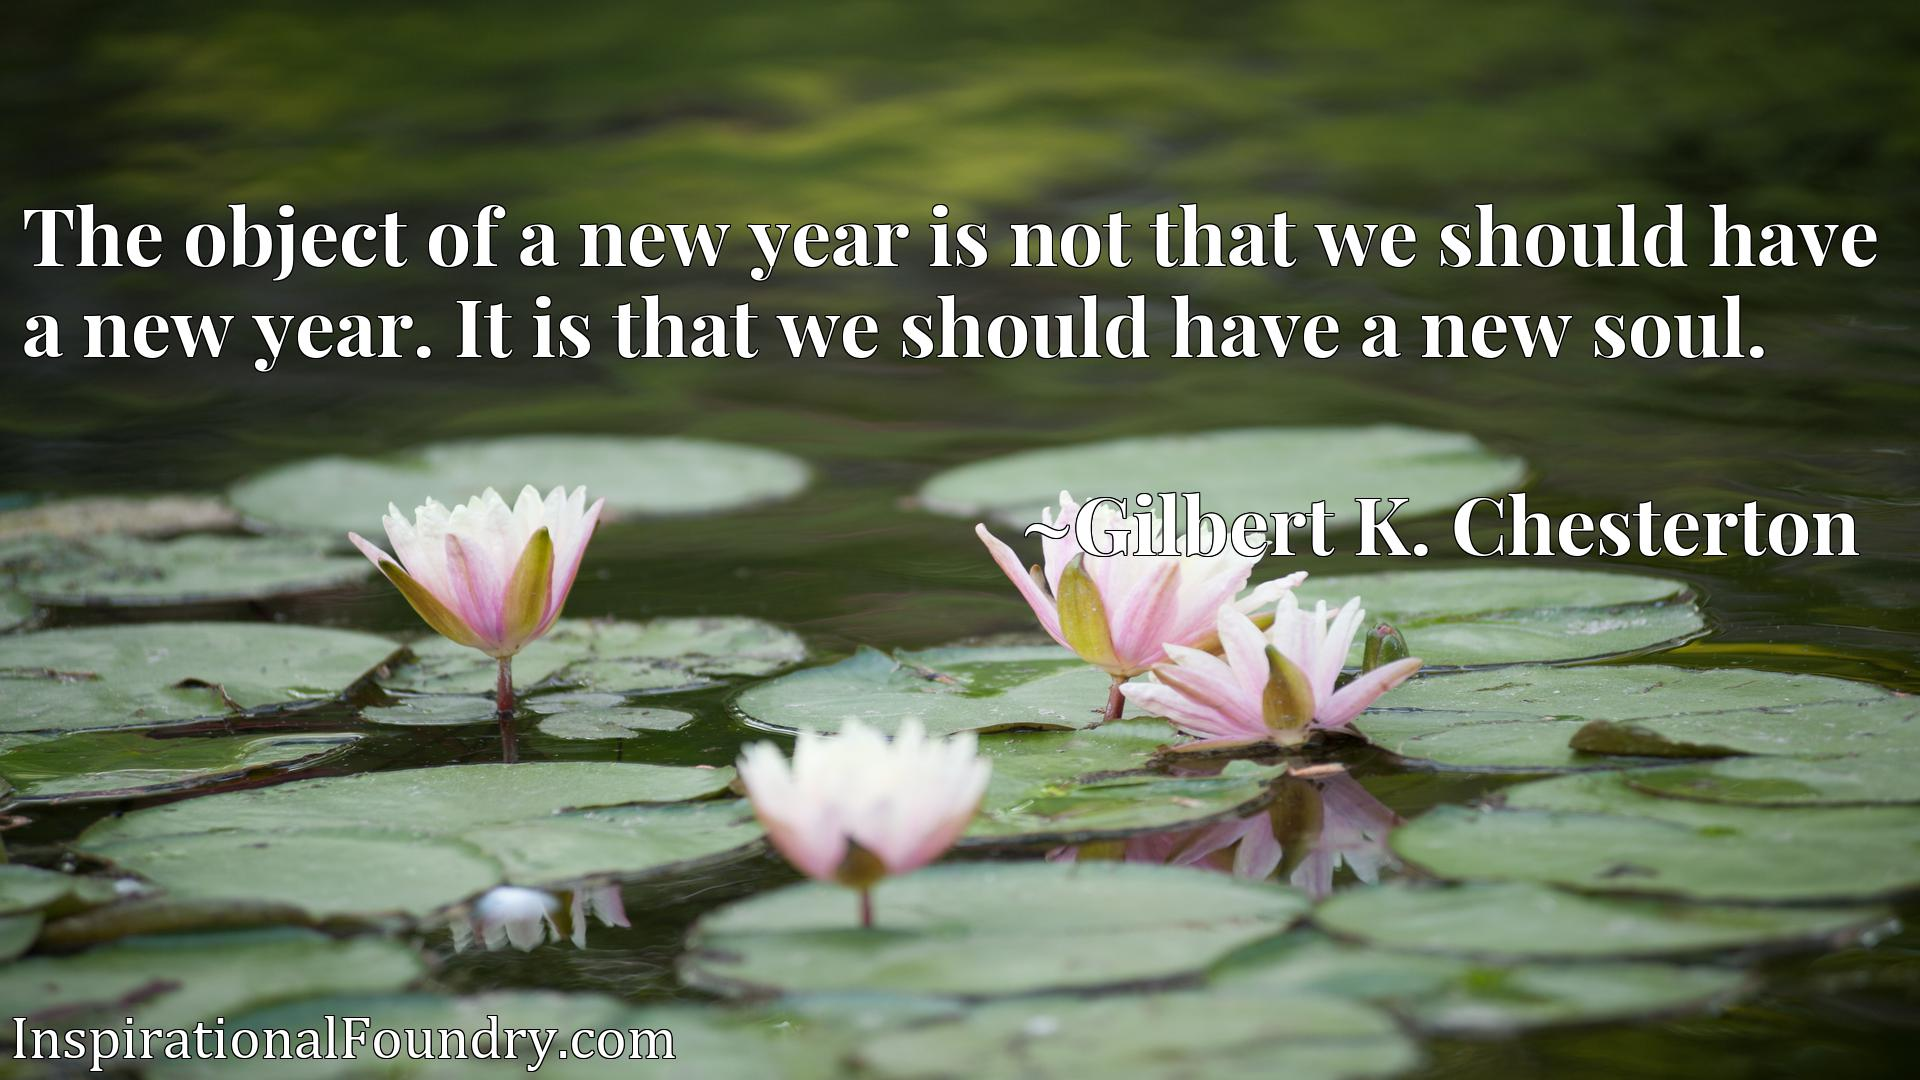 The object of a new year is not that we should have a new year. It is that we should have a new soul.